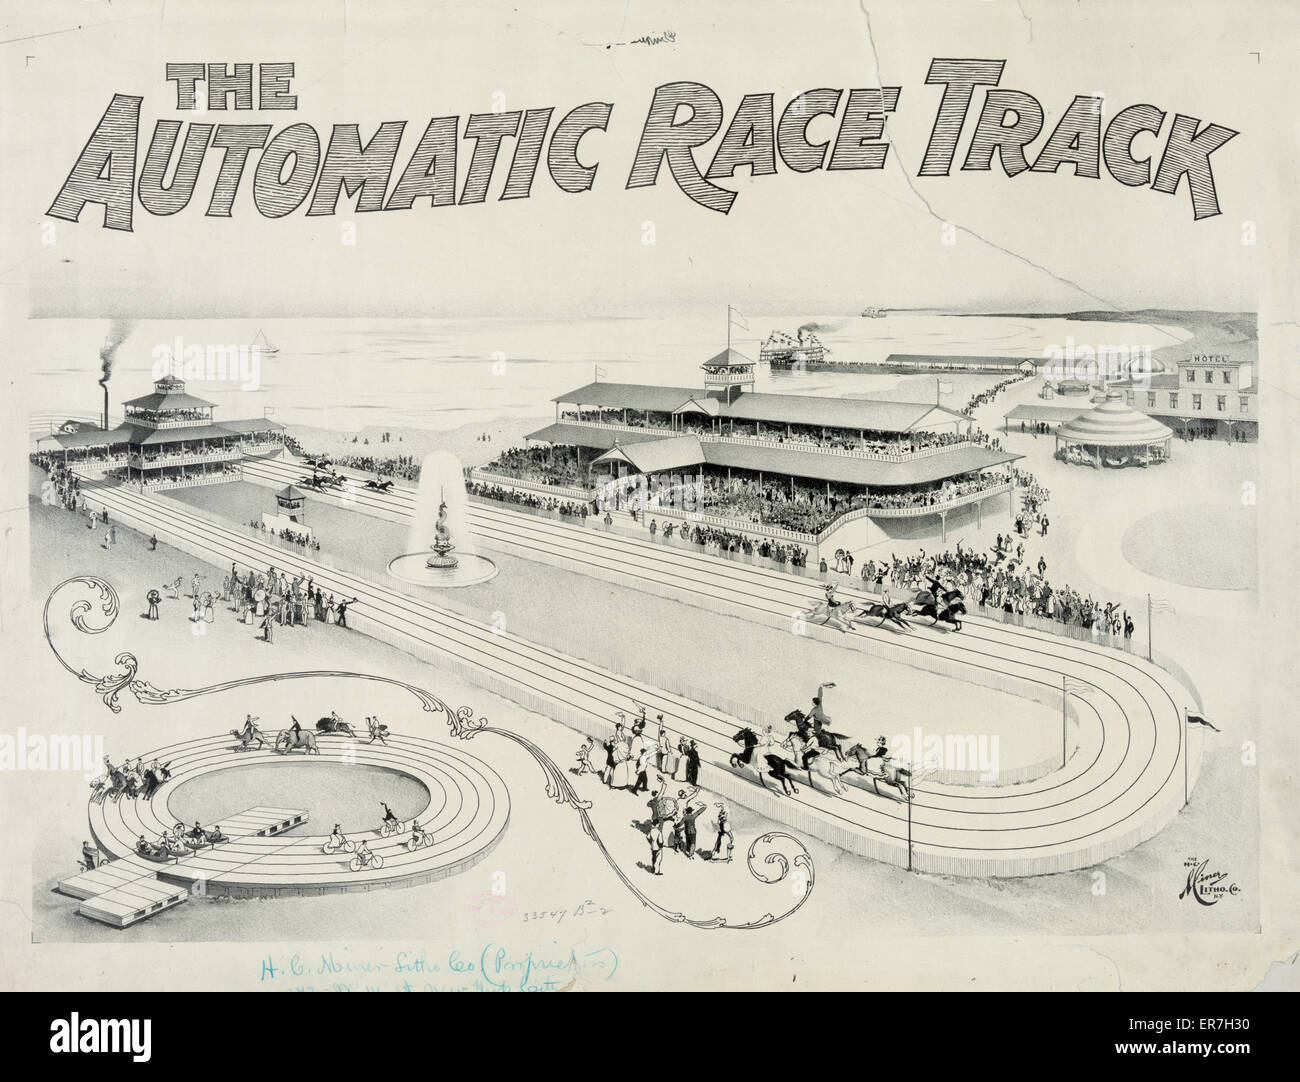 The automatic race track. Date c1896 June 4. - Stock Image